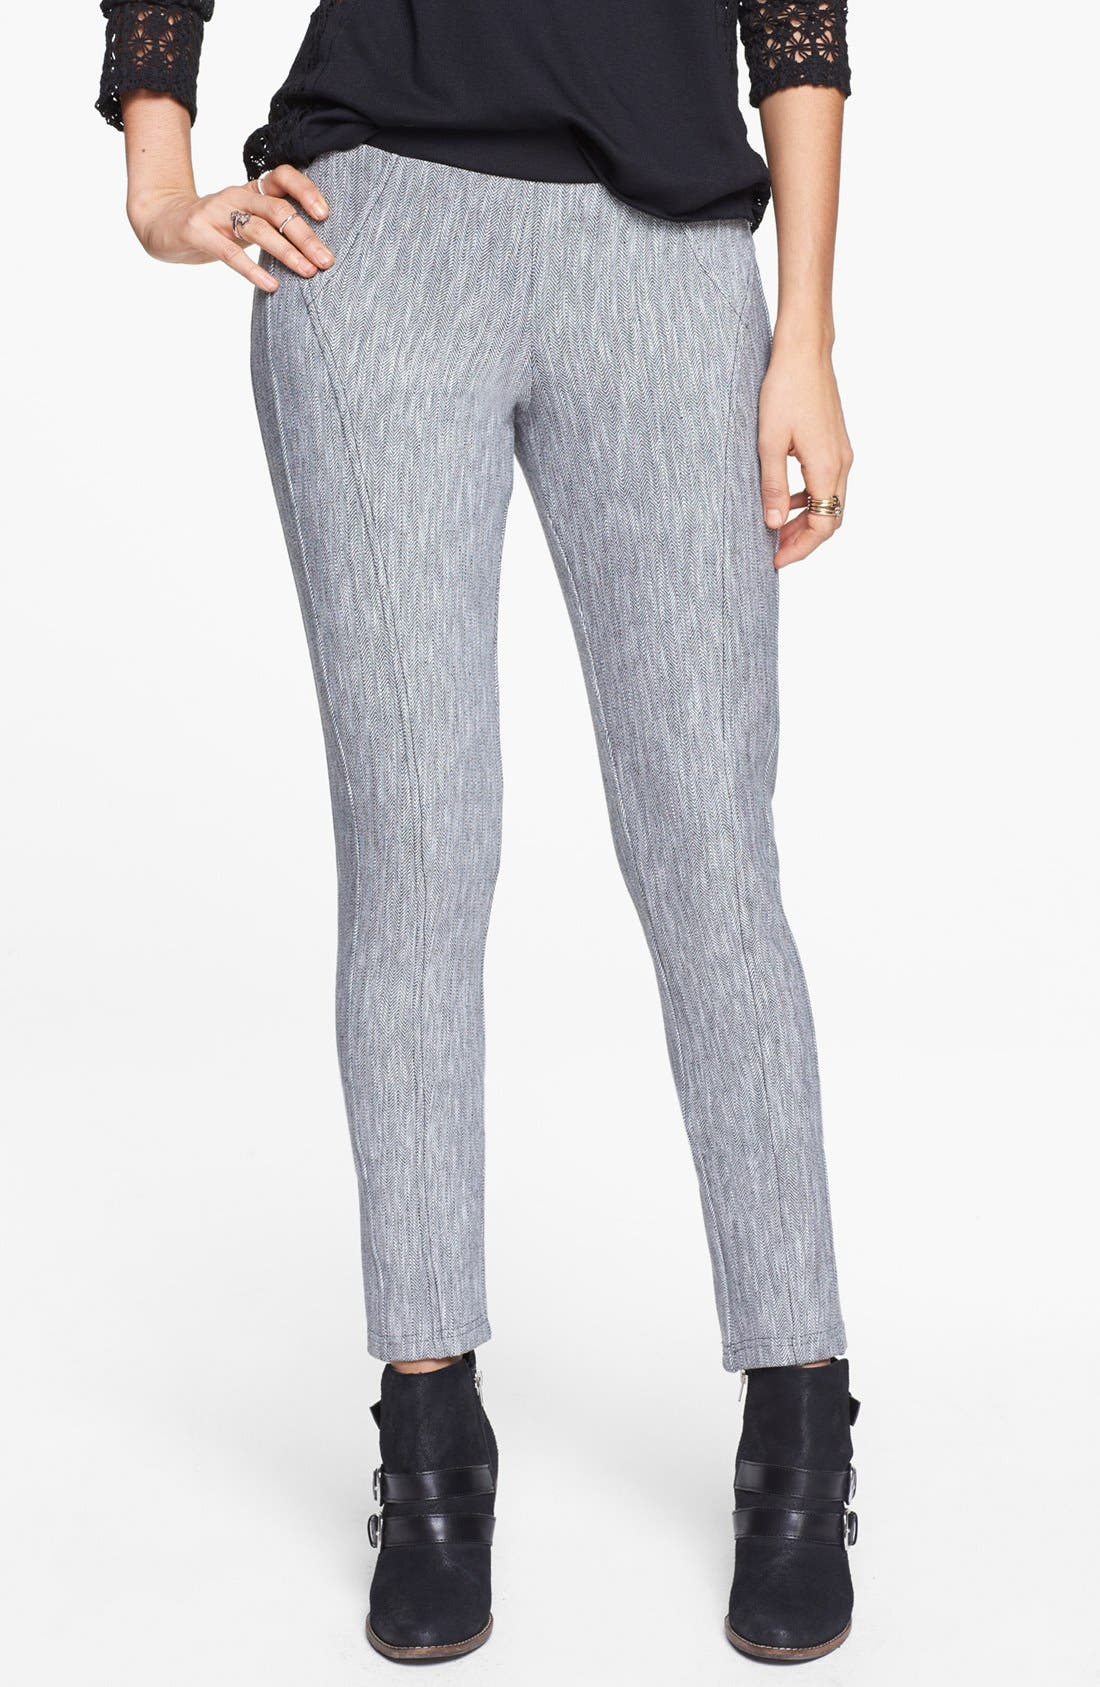 Alternate Image 1 Selected - Jolt Herringbone Moto Pants (Juniors)